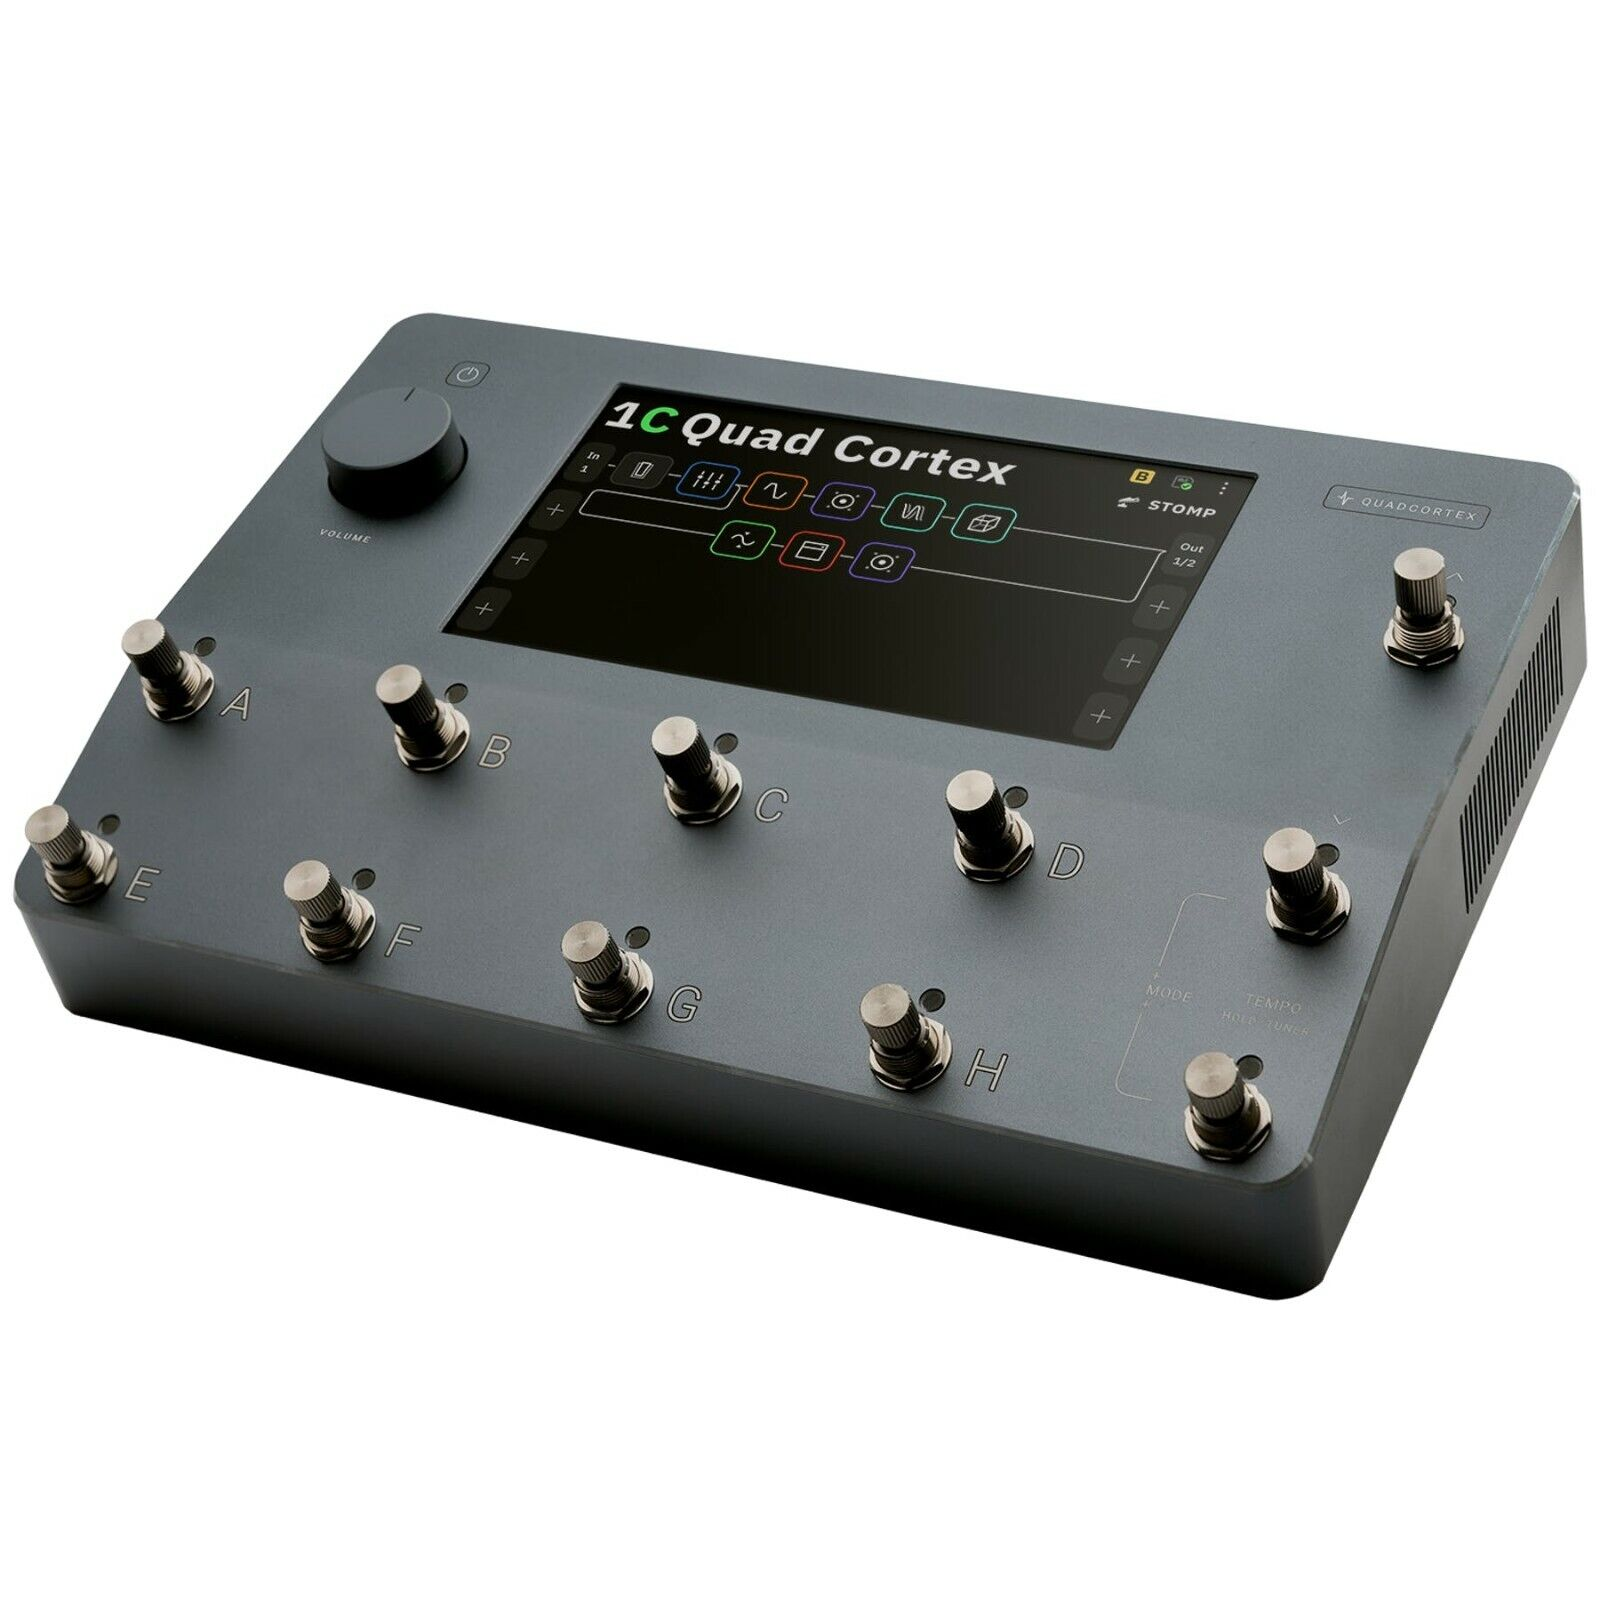 Neural DSP Quad Cortex Digital Effects Modeler/Profiling Floorboard. Available Now for 3000.00